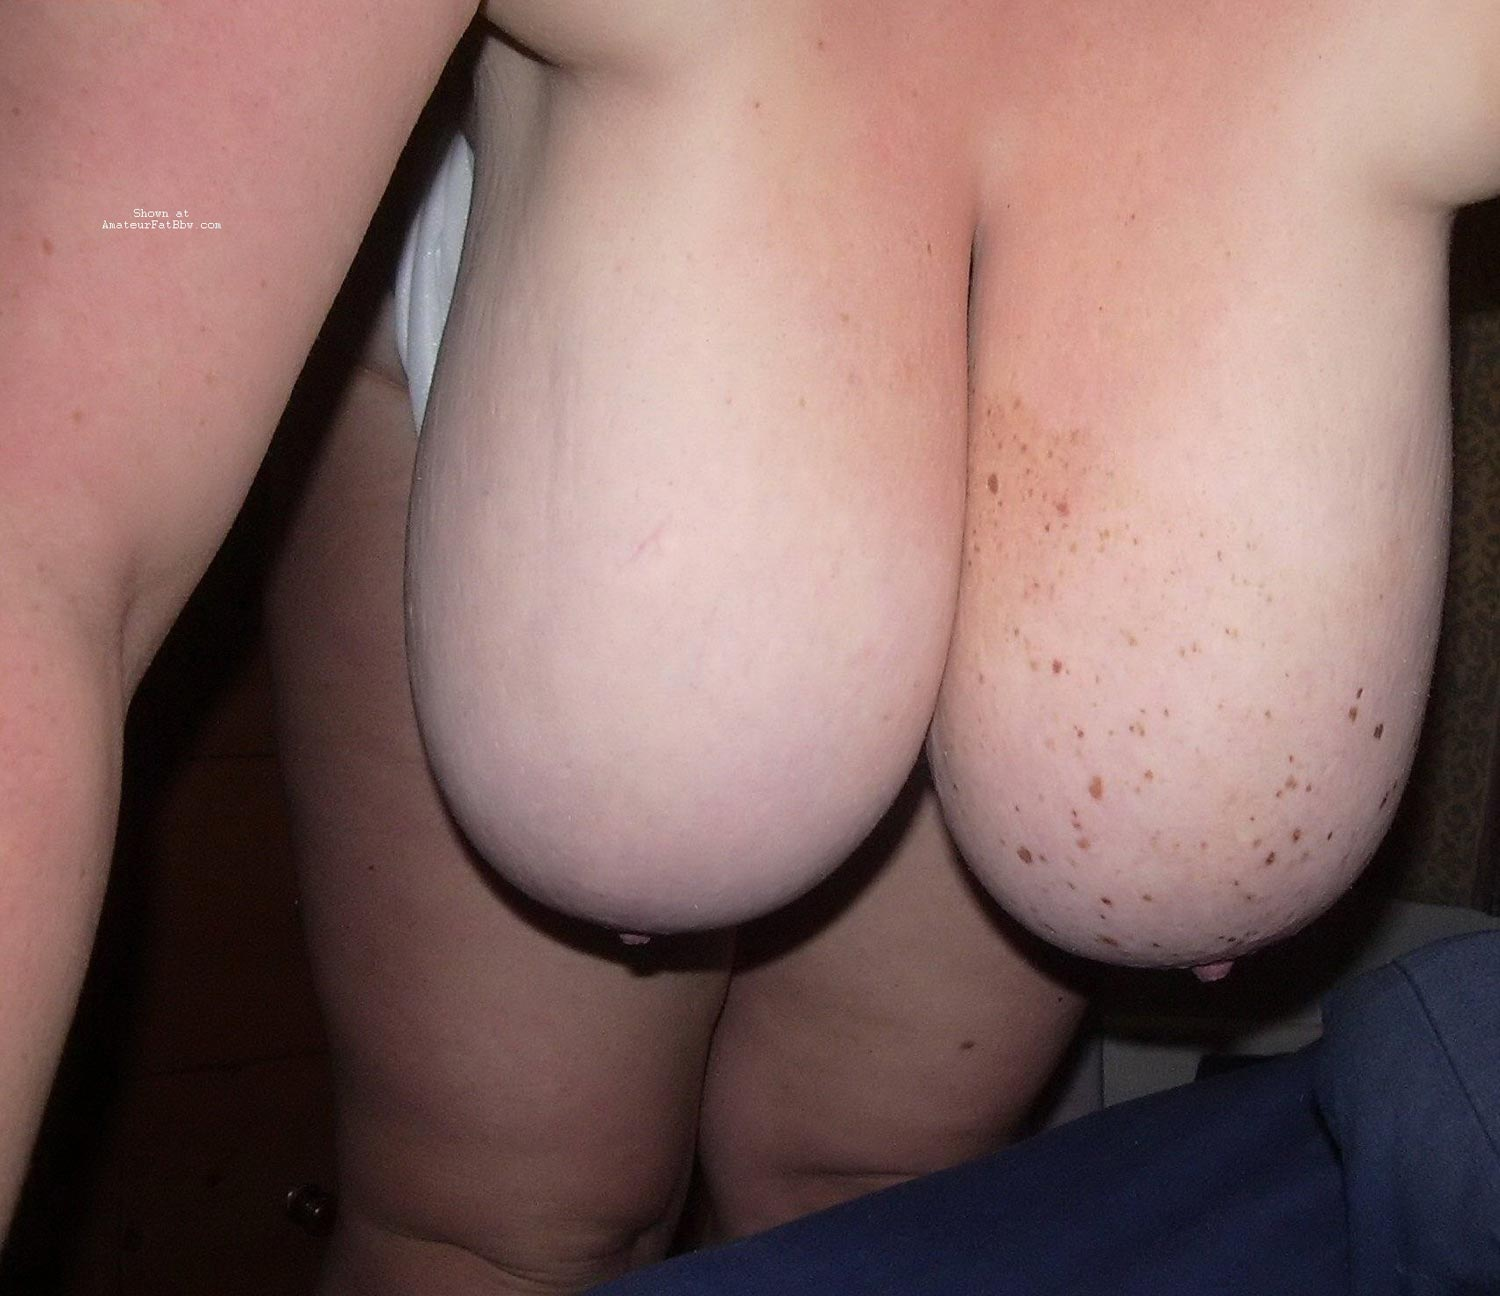 Great huge boobs wife real great!